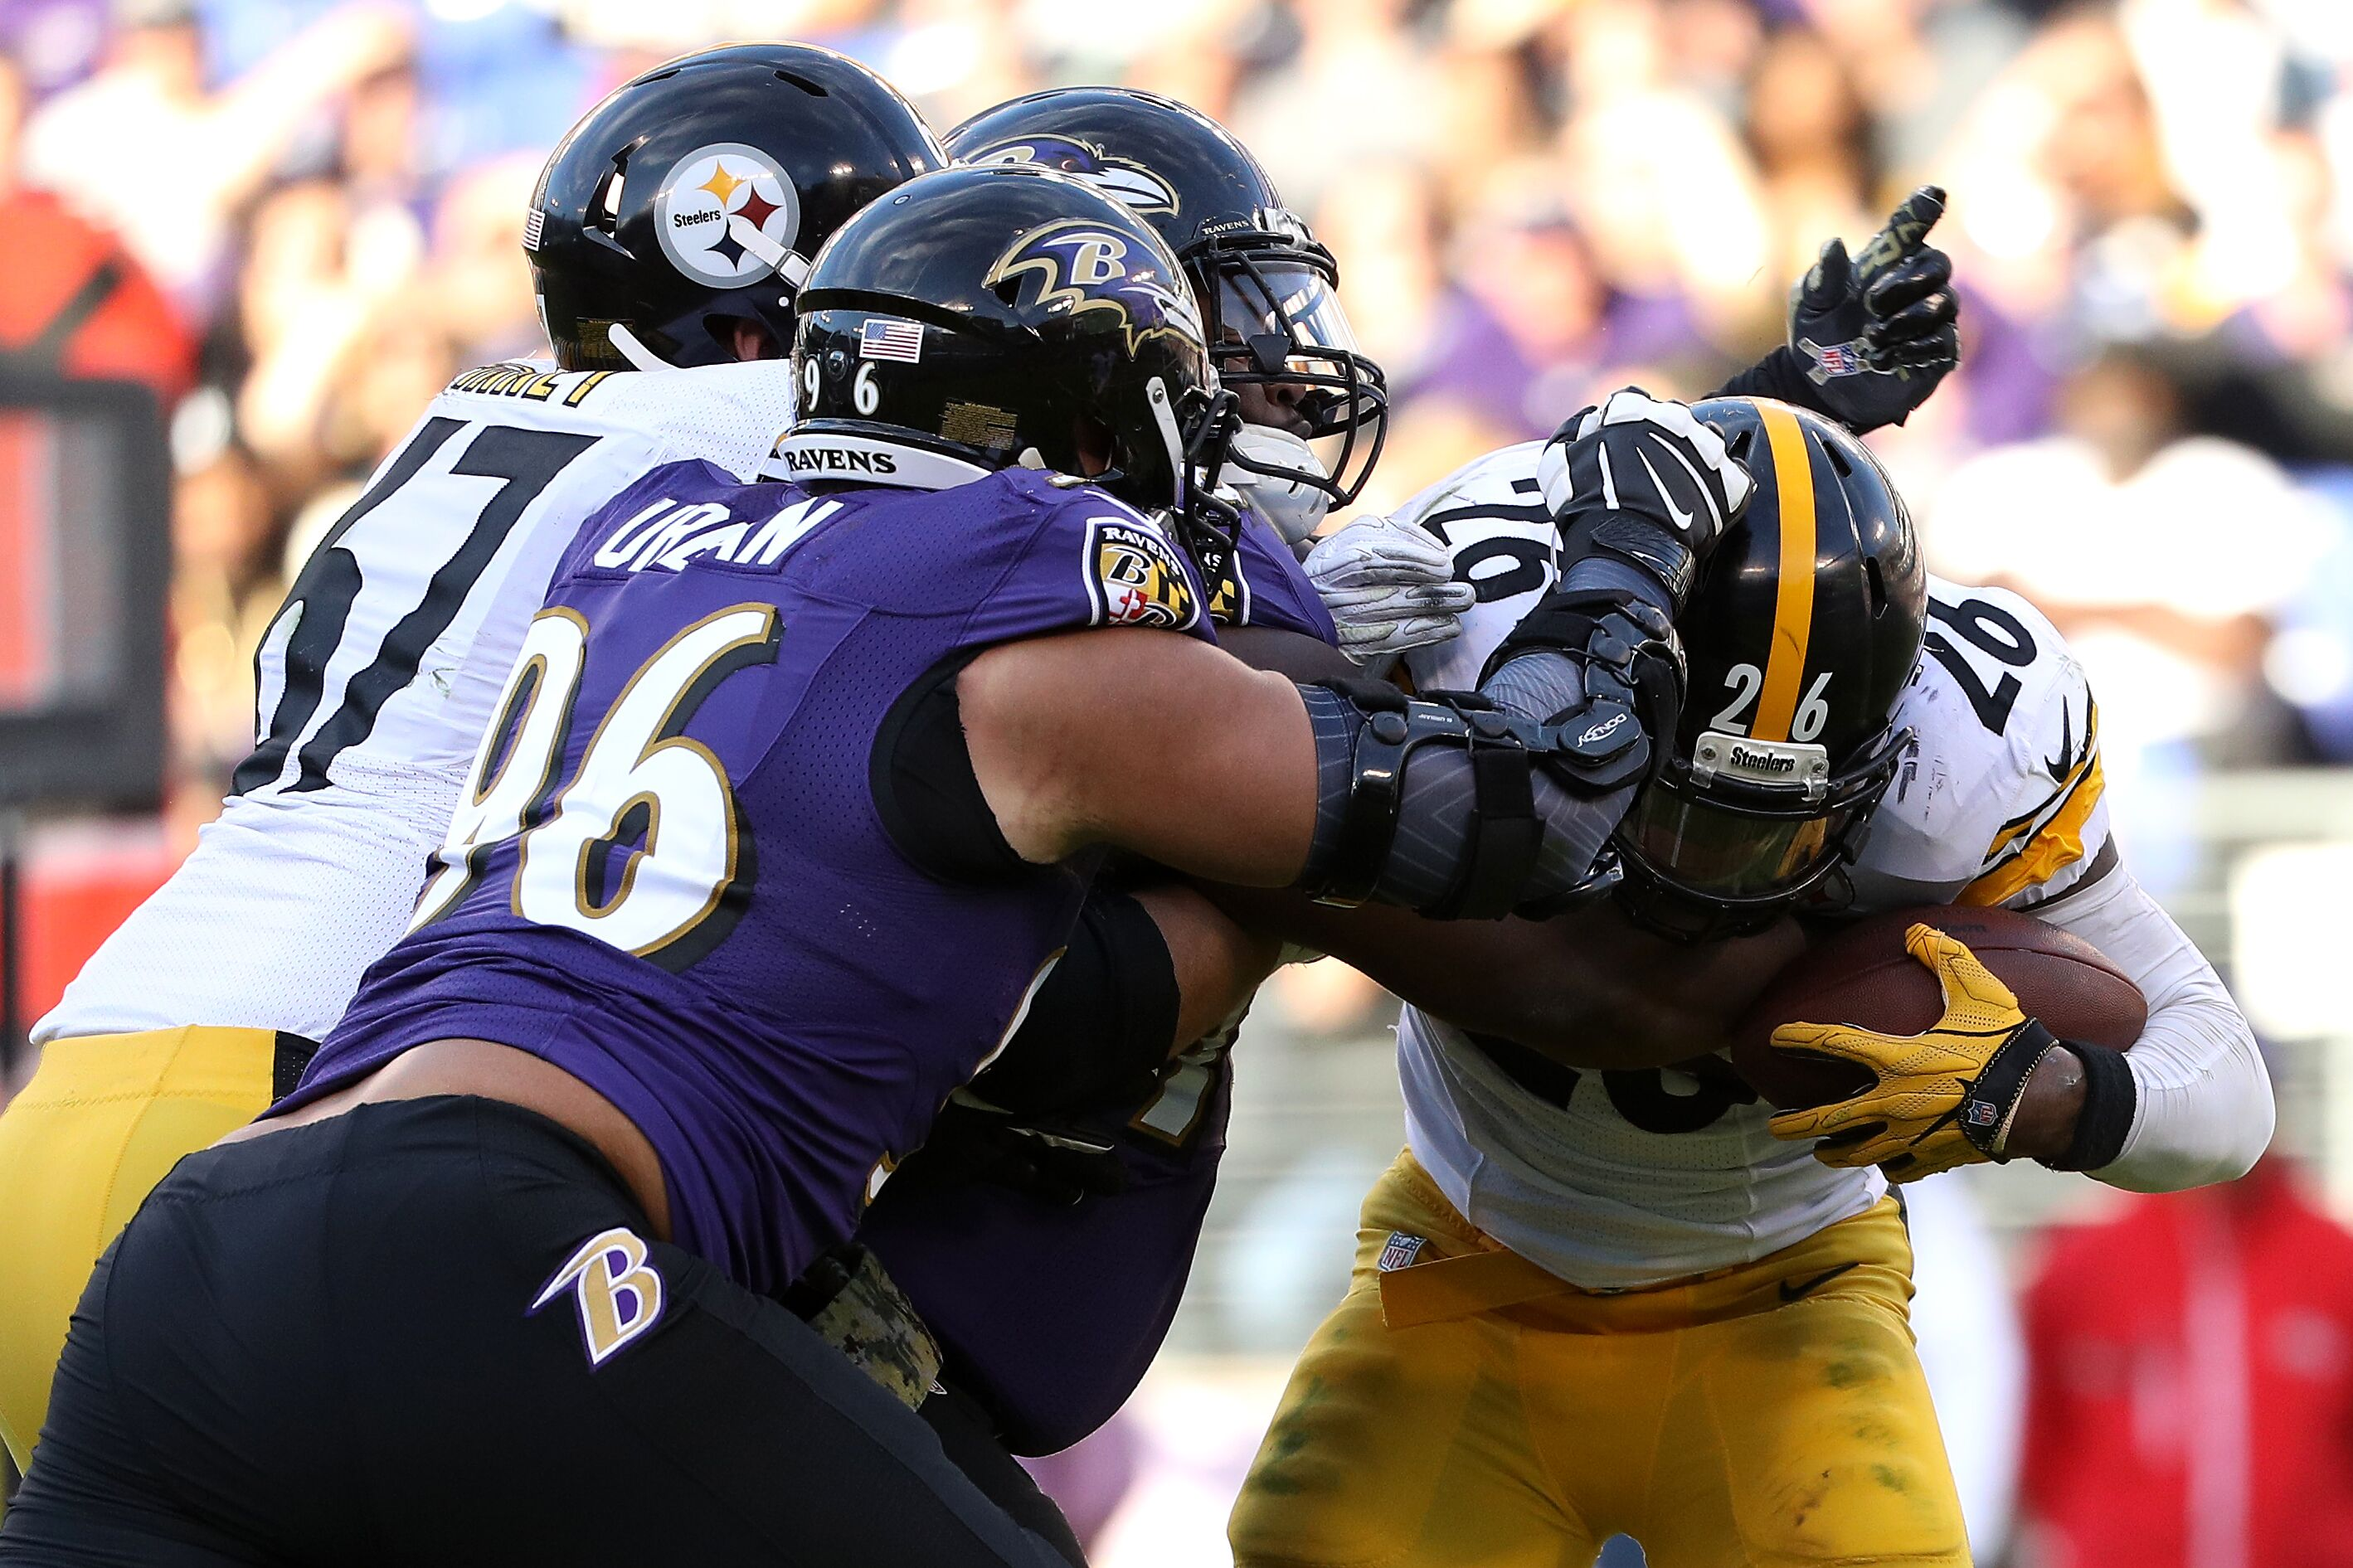 621510332-pittsburgh-steelers-v-baltimore-ravens.jpg